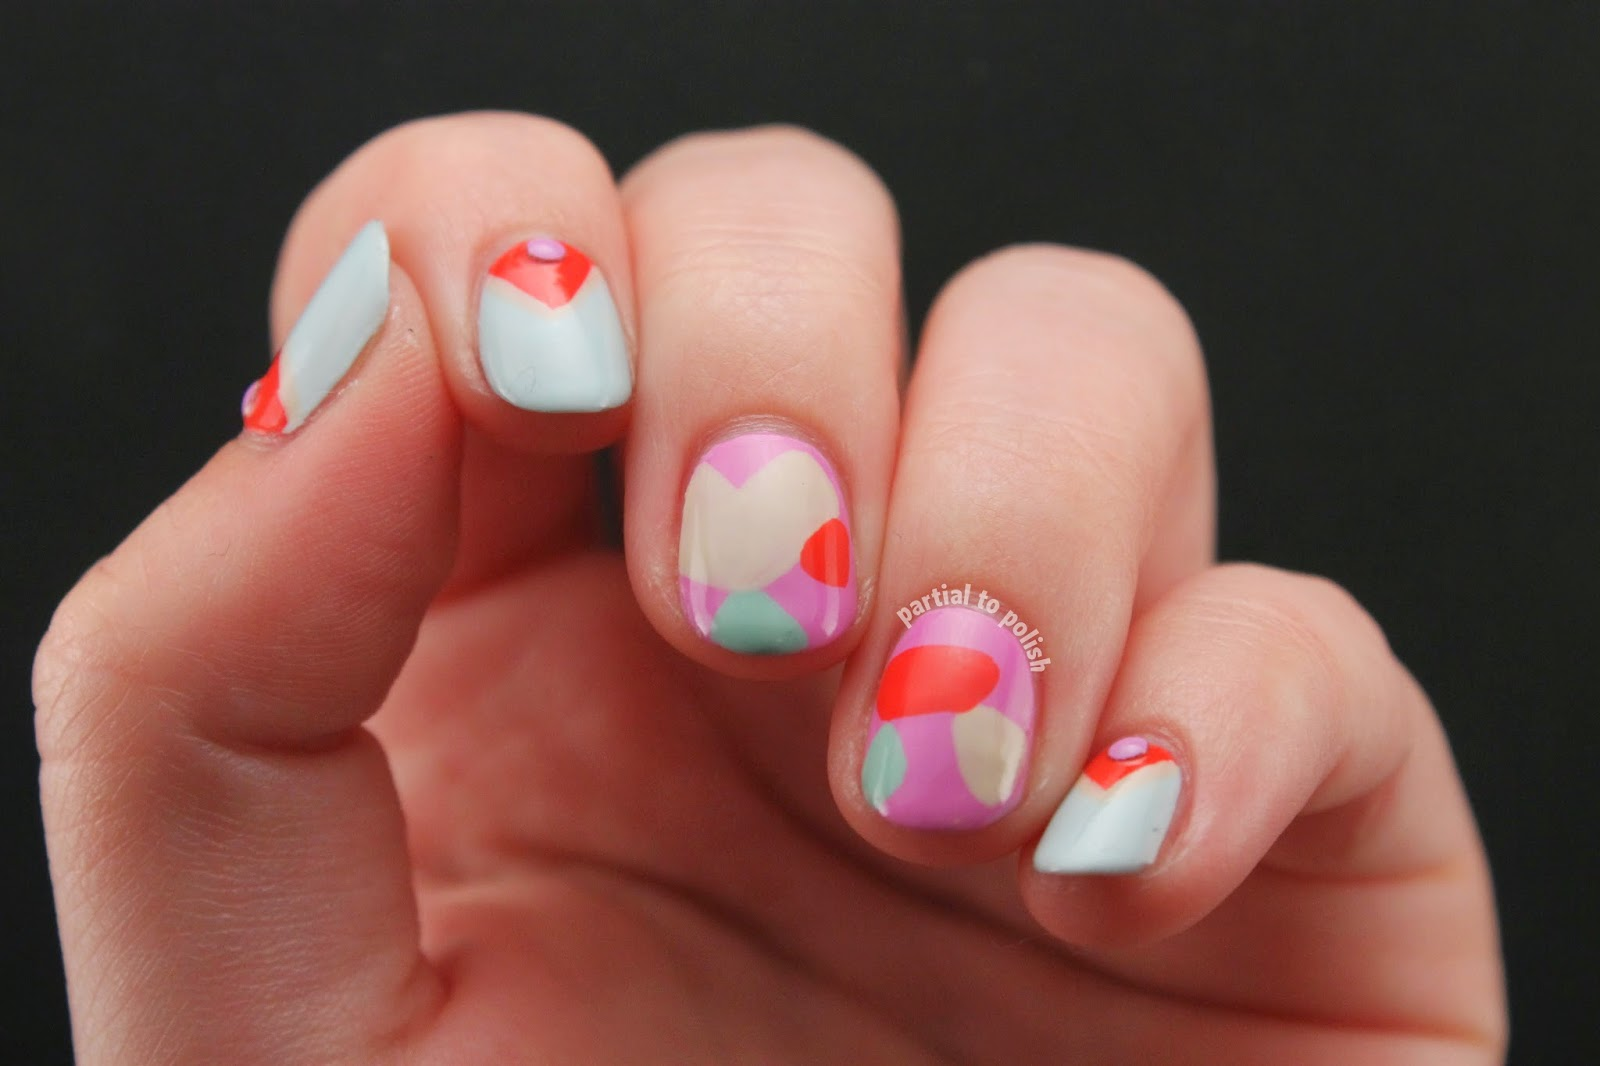 Born Pretty Store Pastel Stud Review & Mr. Candiipants Nail Art